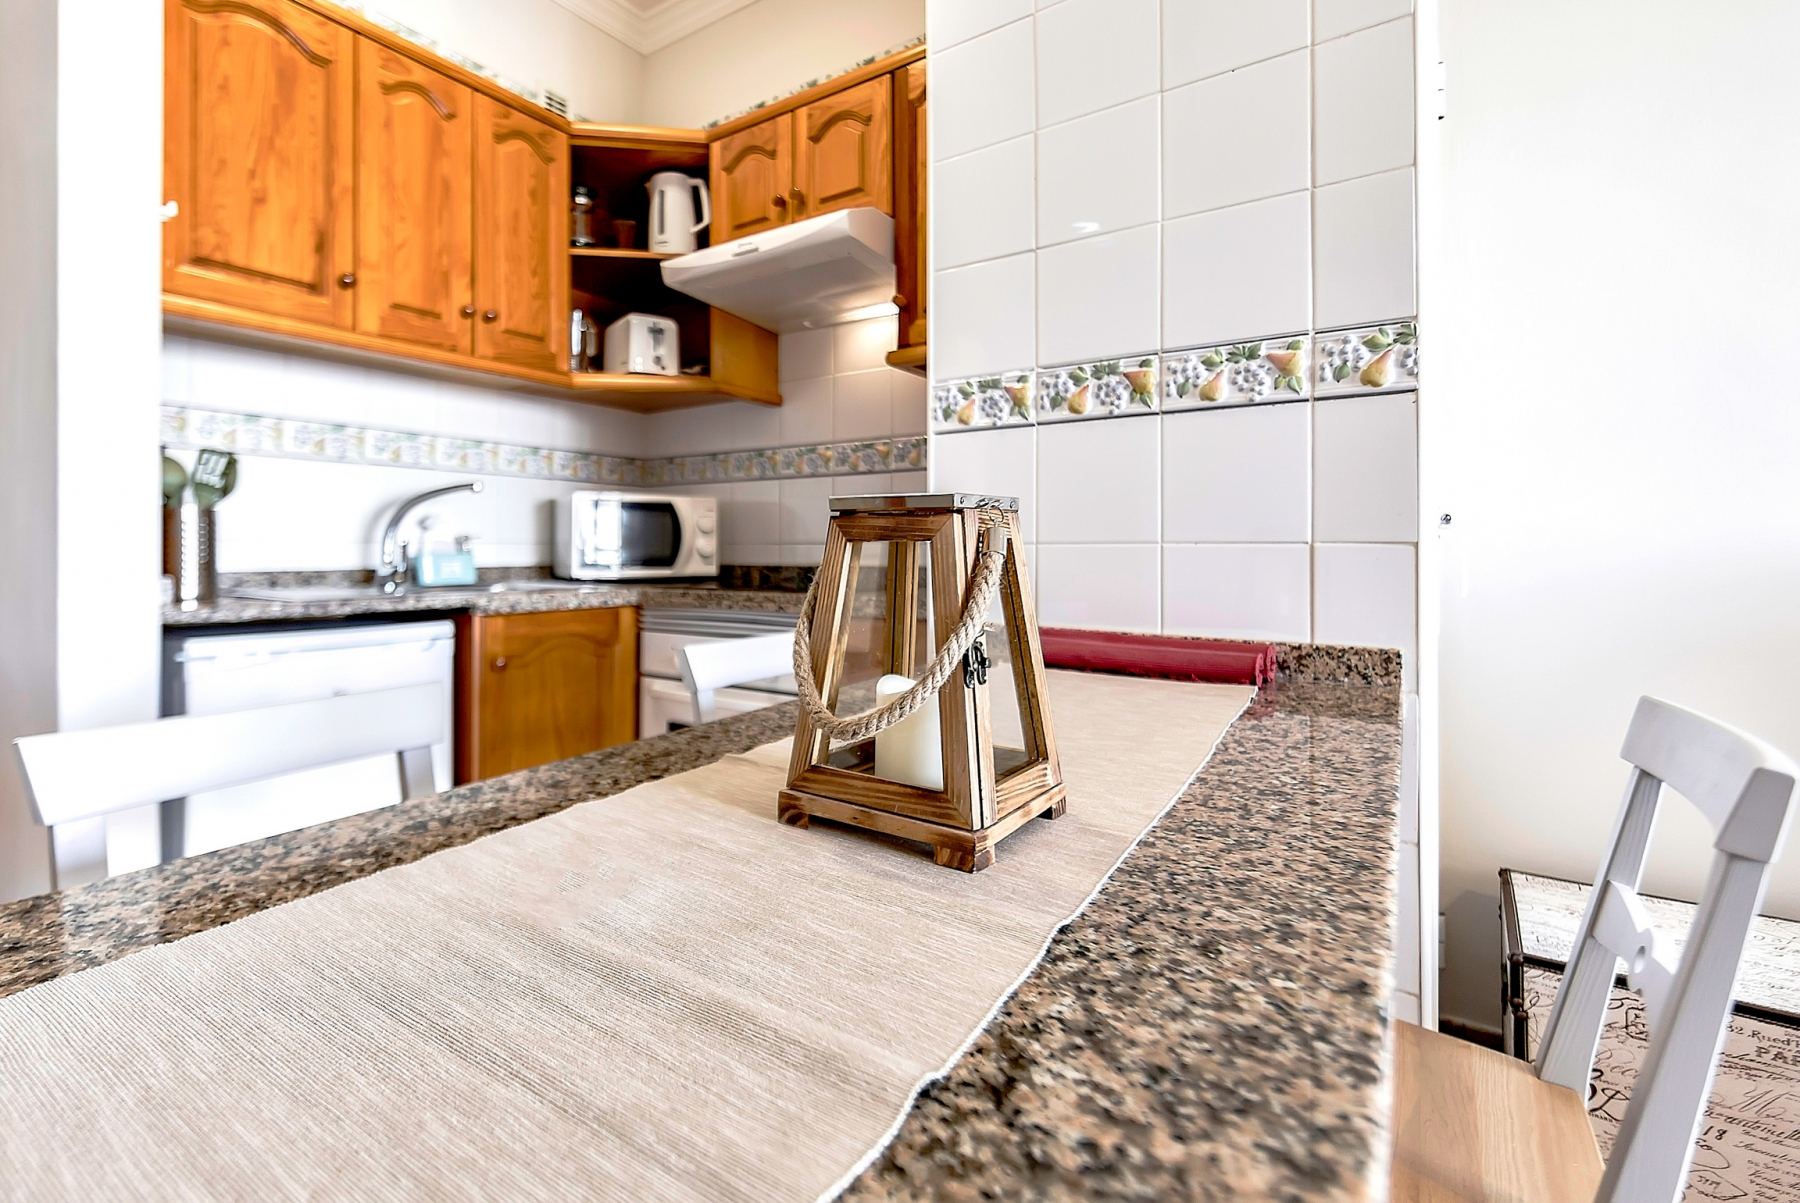 Properties for Sale in Tenerife, Canary Islands, Spain | SylkWayStar Real Estate. 1 bedroom apartment Yucca Park. Image-22584